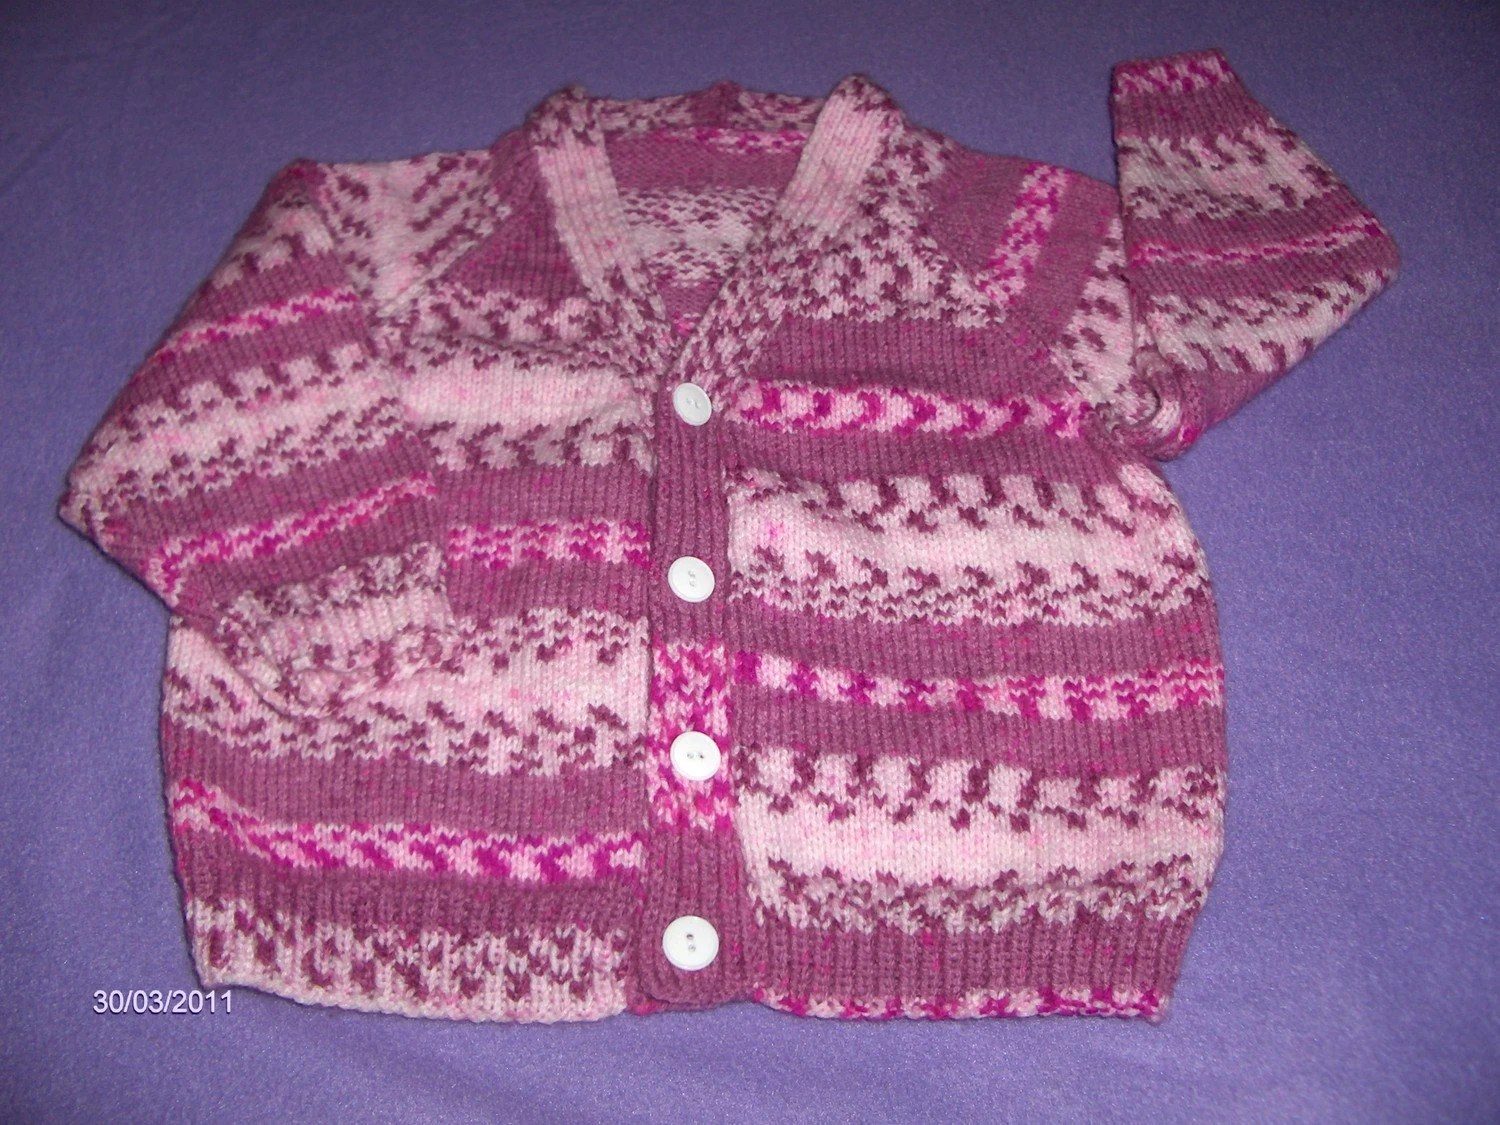 cardigan. size 30in chest